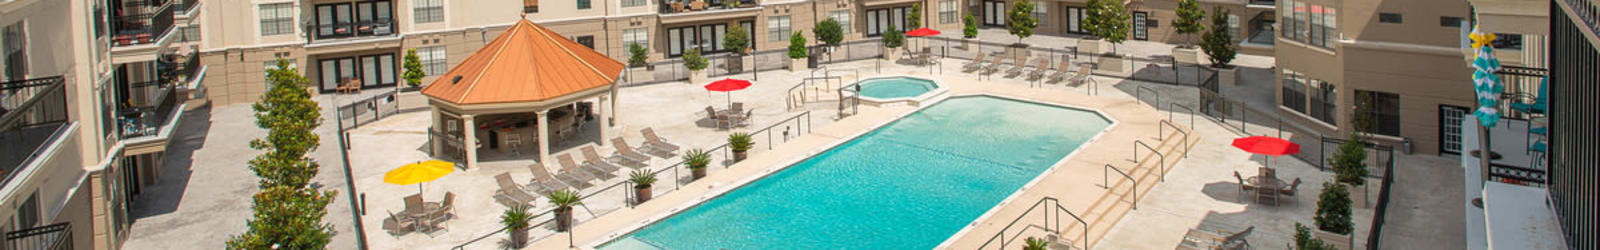 Schedule a tour at Chateau de Ville in Farmers Branch, Texas